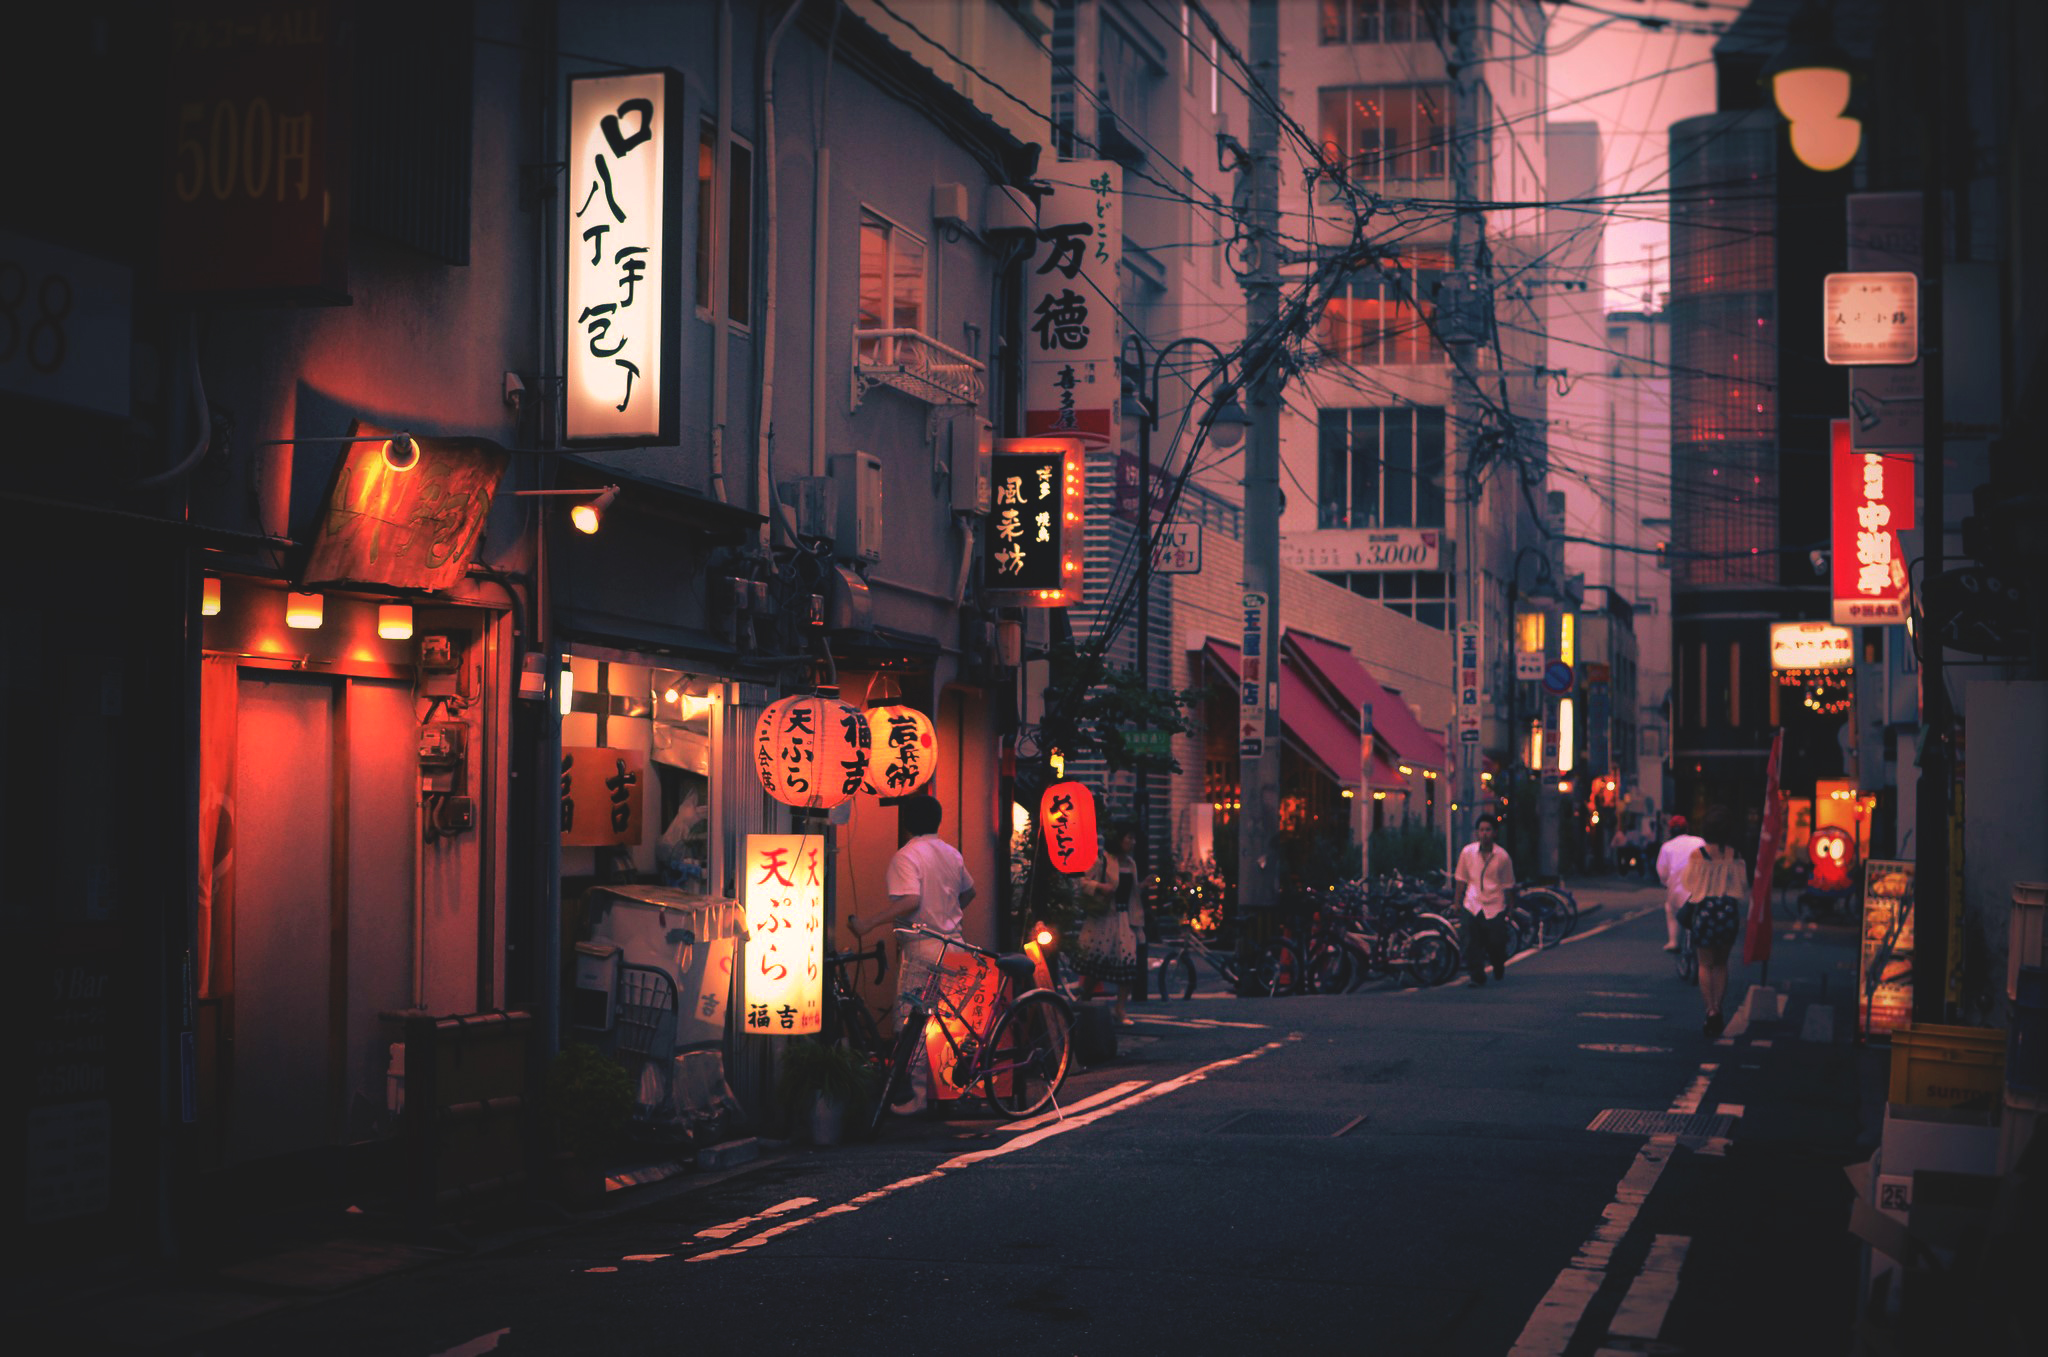 General 2048x1357 city Japan Japanese characters Asia urban street lights